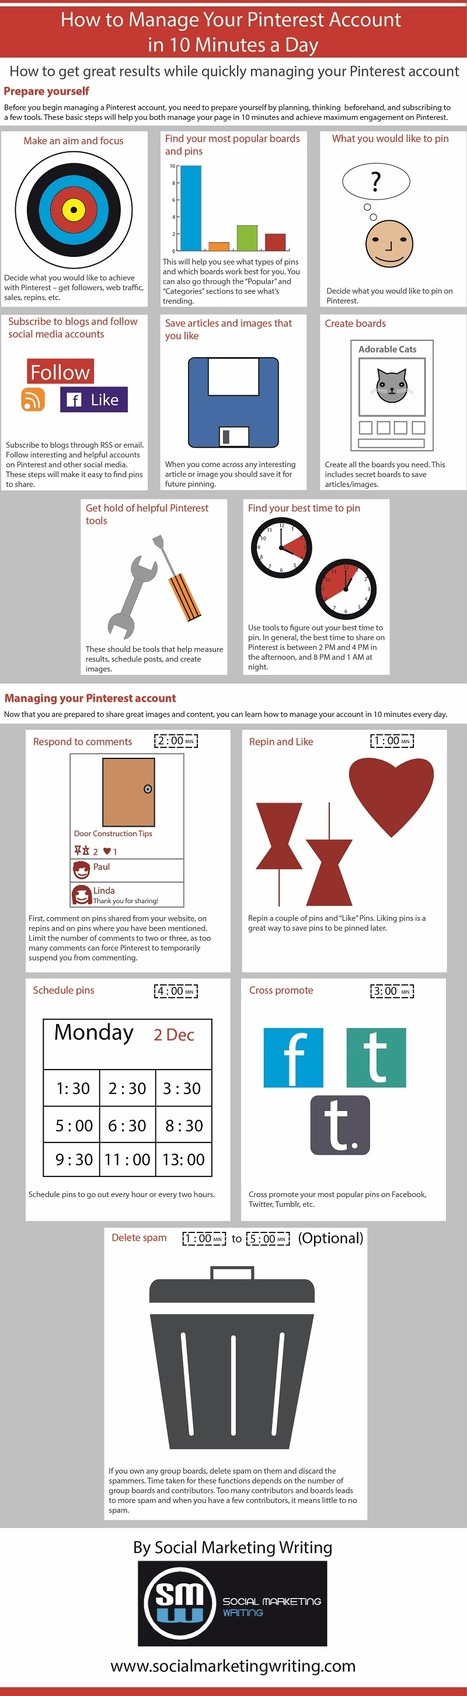 Manage Your Pinterest Account in 10 Minutes a Day | Social Media Today | AtDotCom Social media | Scoop.it